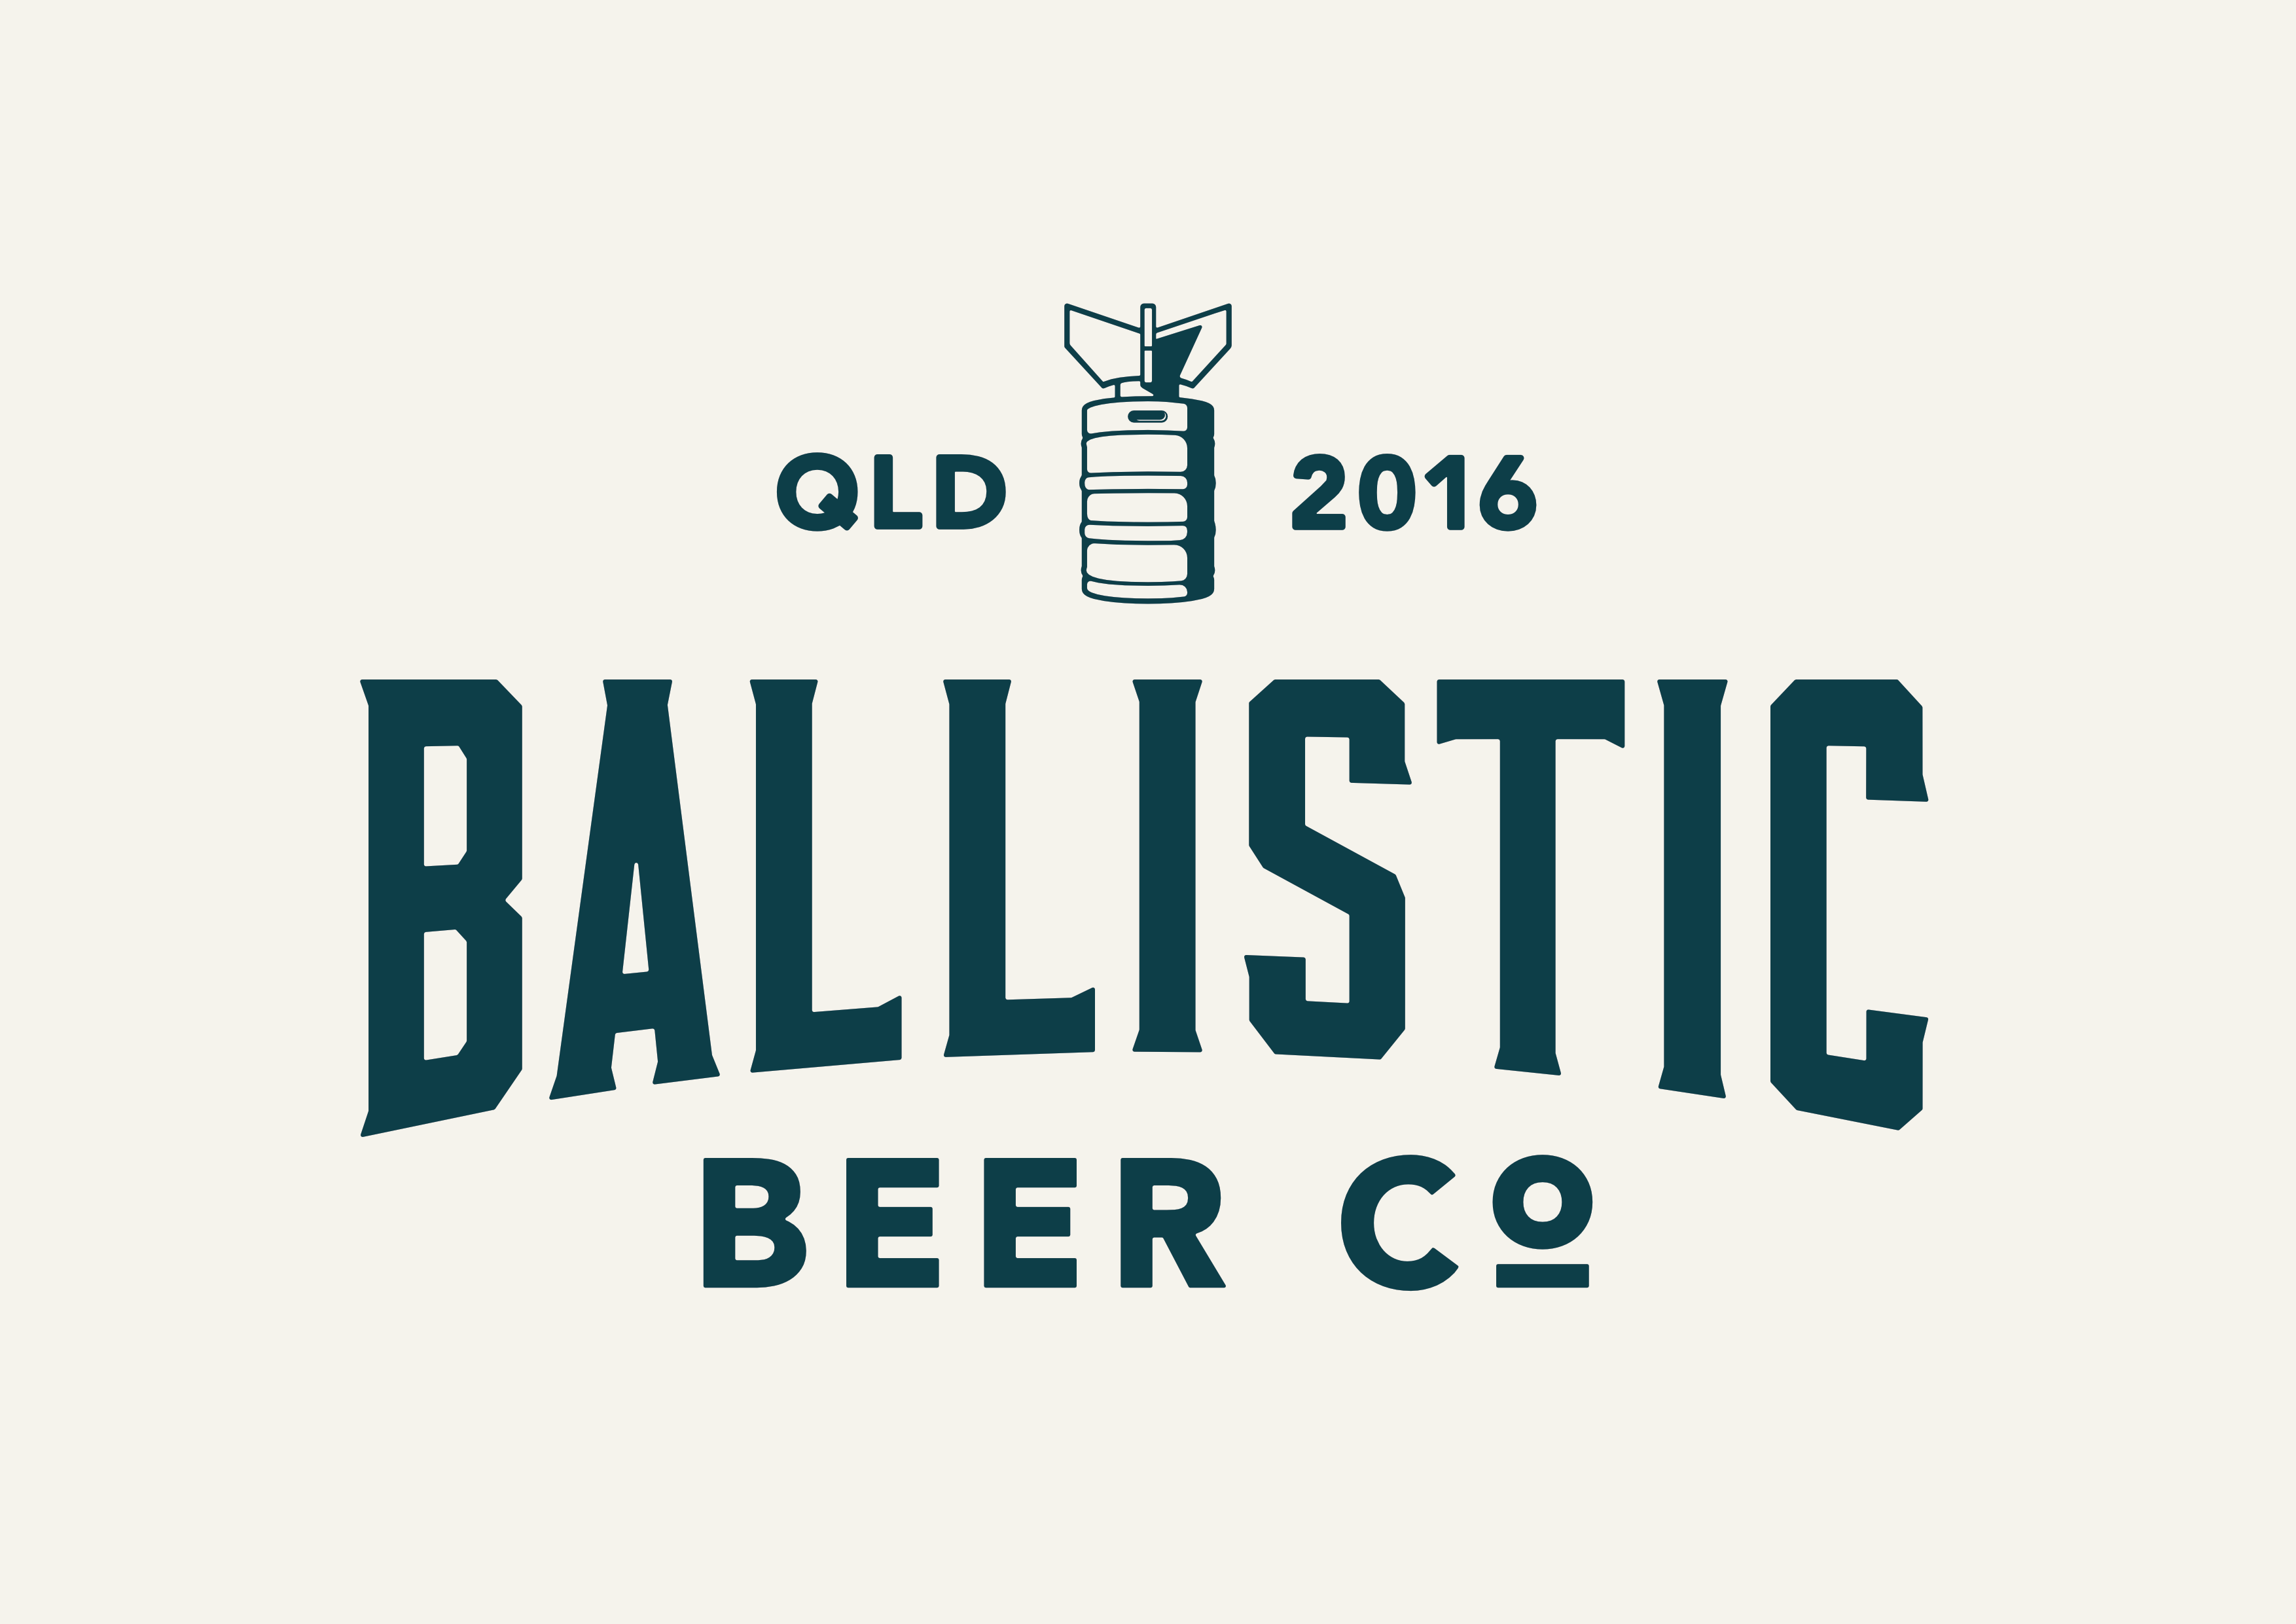 Ballistic Beer Co